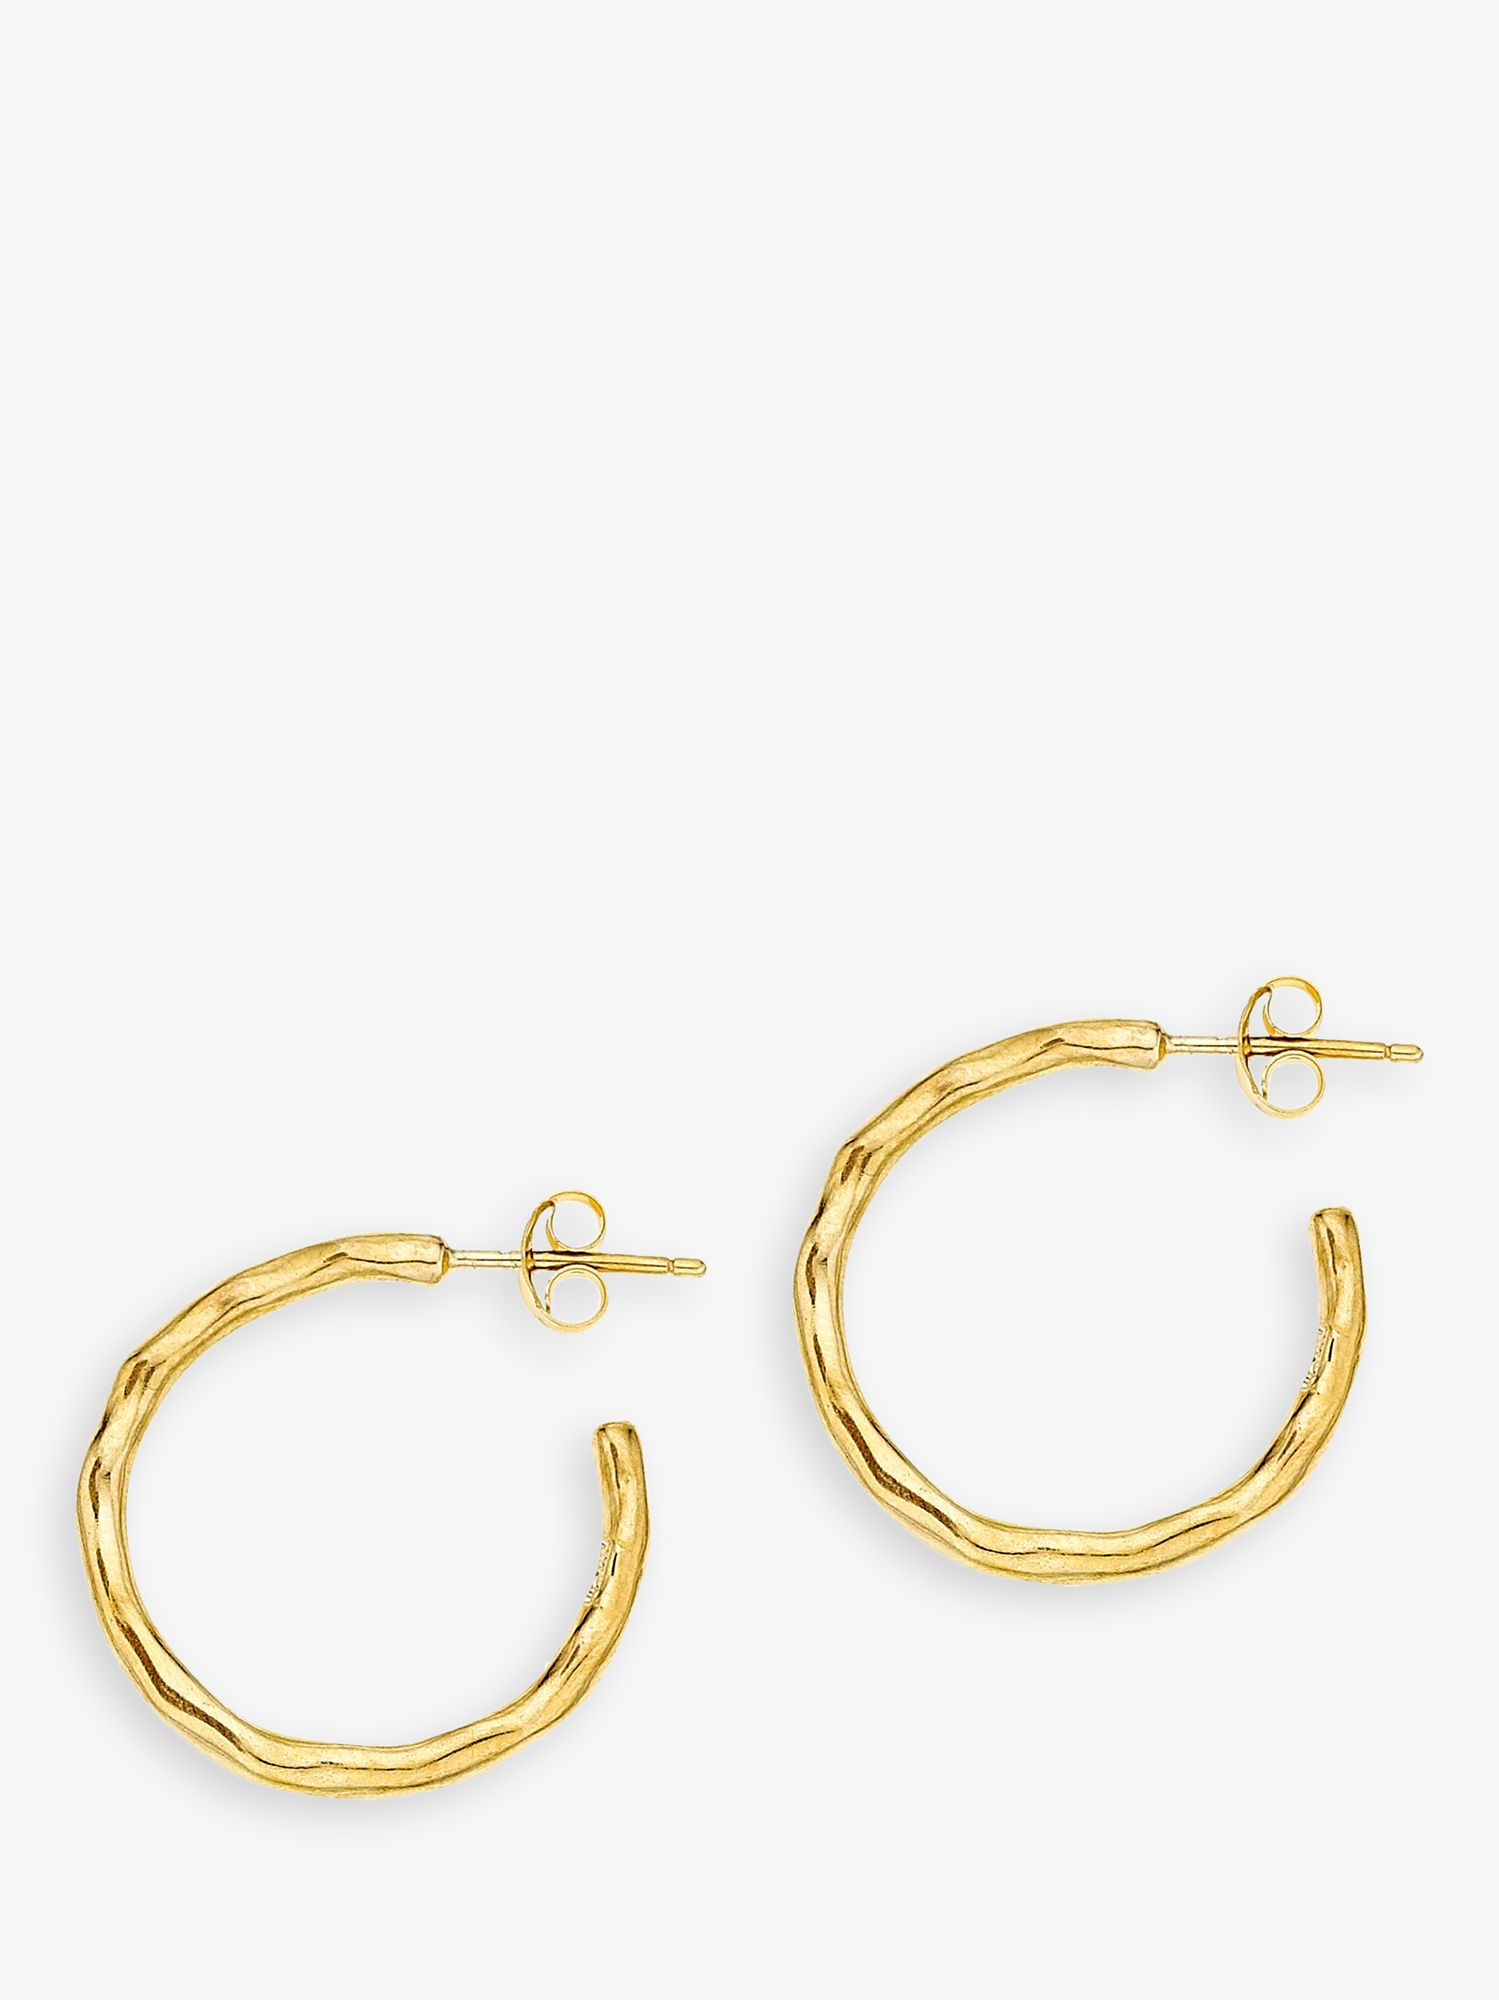 Dower & Hall Dower & Hall 18ct Gold Vermeil Small Ripple Hoop Earrings, Gold